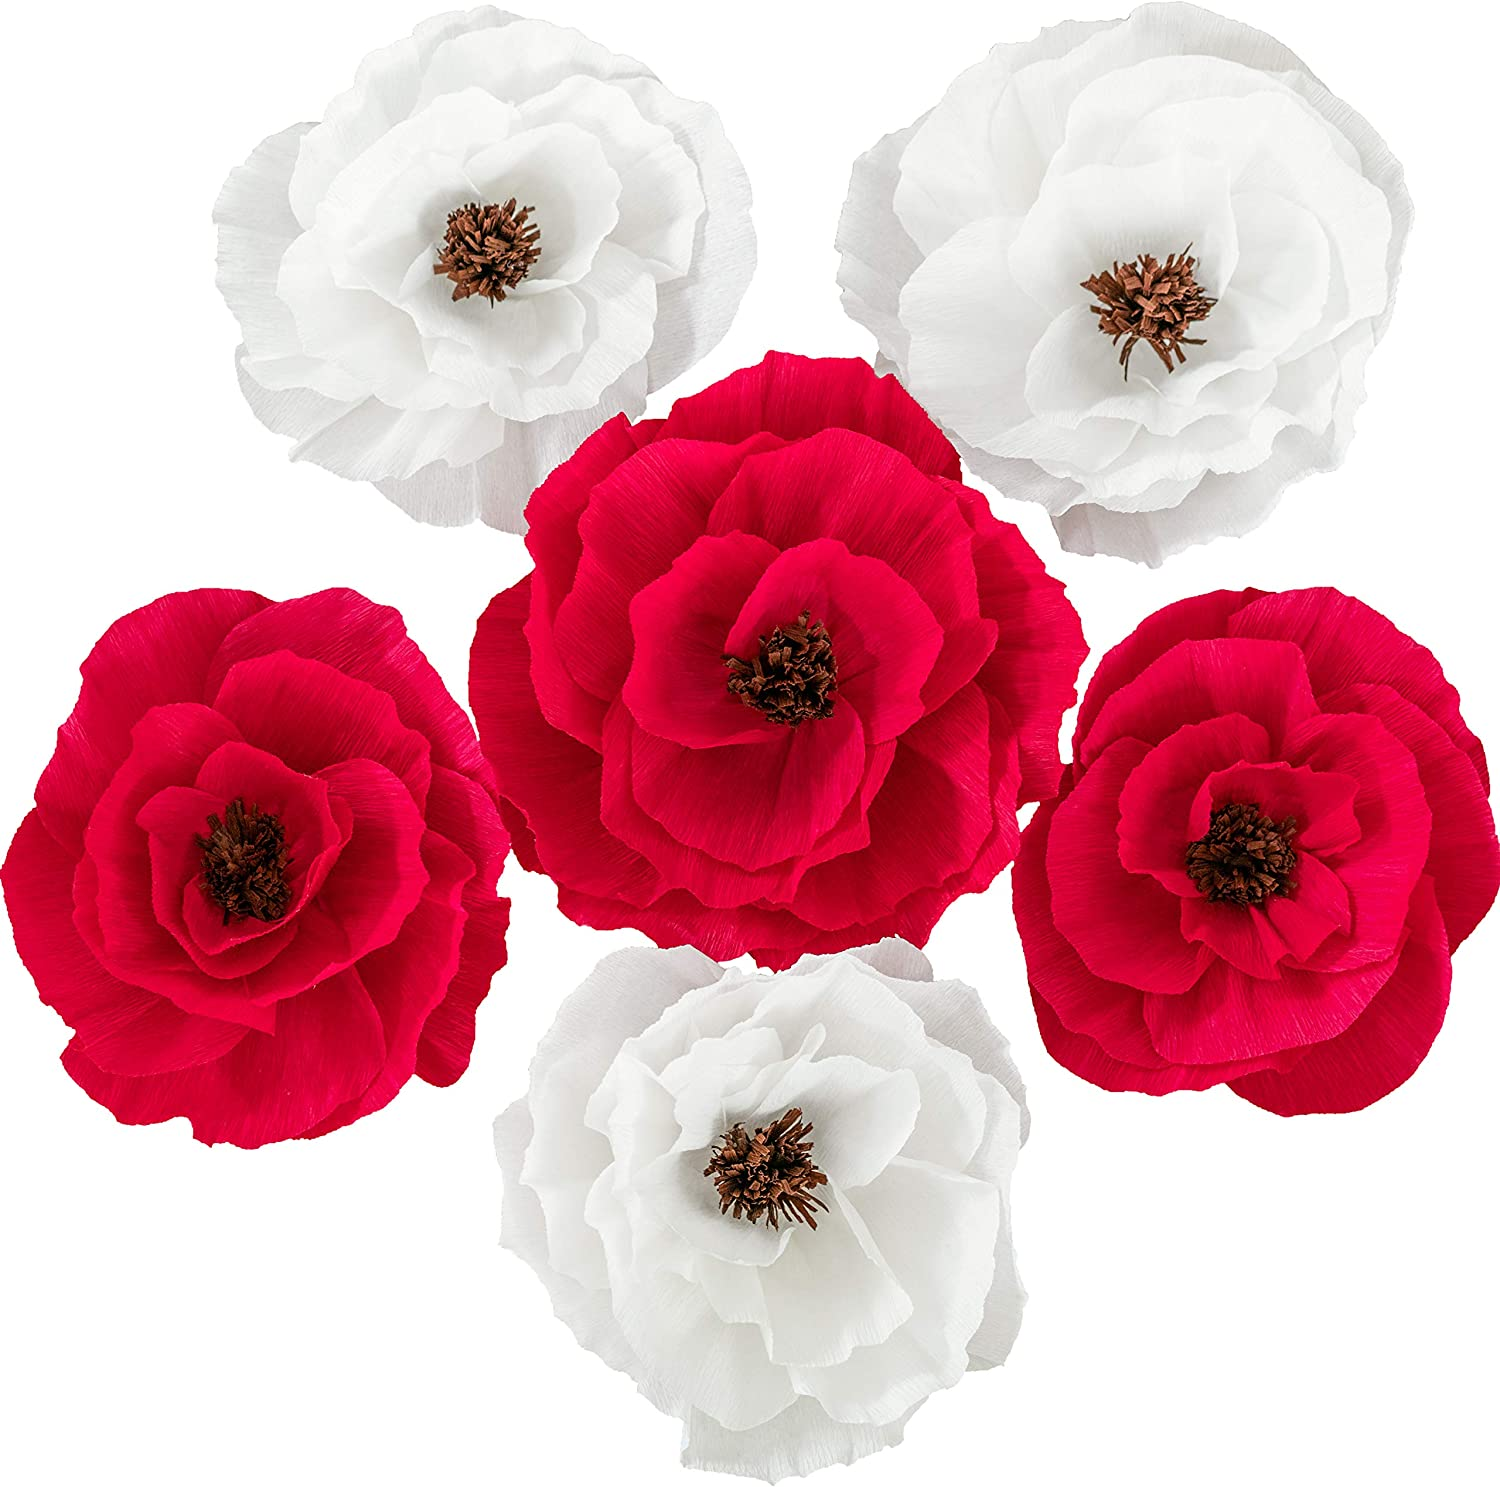 Paper Flowers Decorations for Wall (Red/White) - Flower Wall Decor for Wedding Backdrop Baby Shower Bridal Shower Party Nursery Centerpiece Handmade Wall Flowers Decorations (6Pcs)…